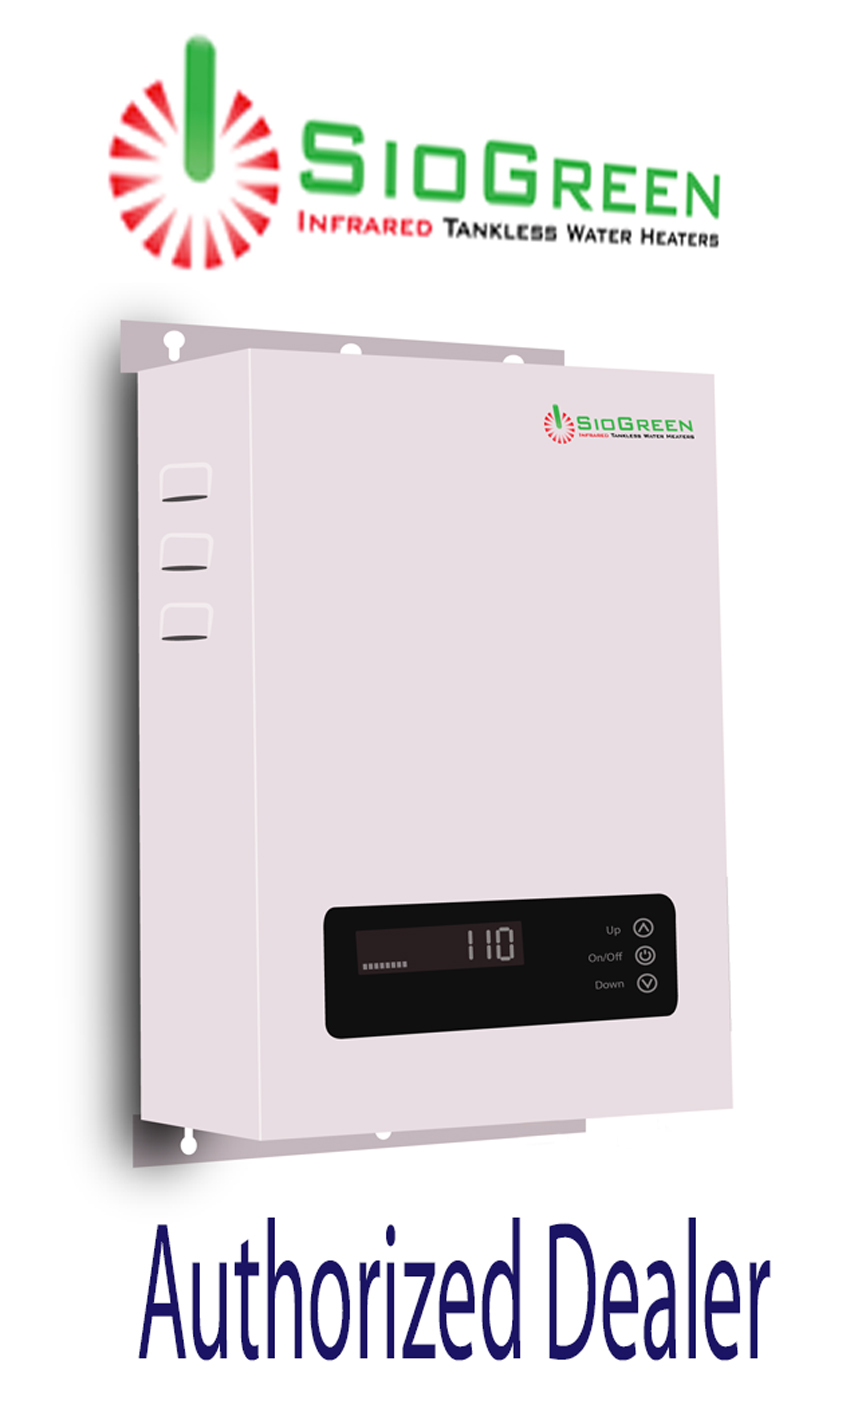 SioGreen Infrared Tankless Water Heater Model SIO14